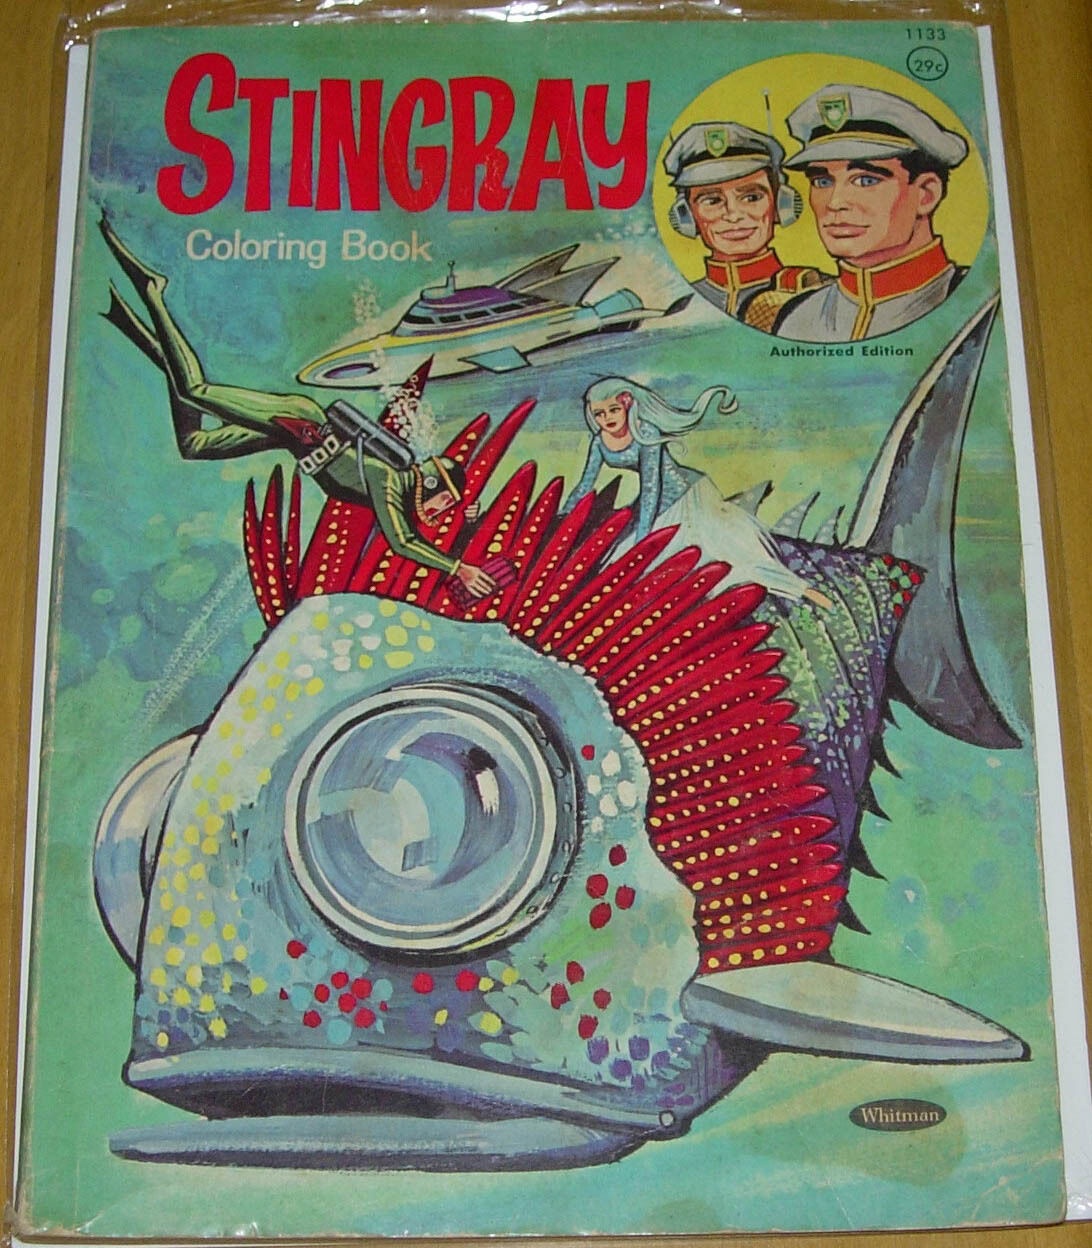 STINgrau COLORING BOOK  WHITMAN 1966  GERRY ANDERSON  SUPERMARIONATION